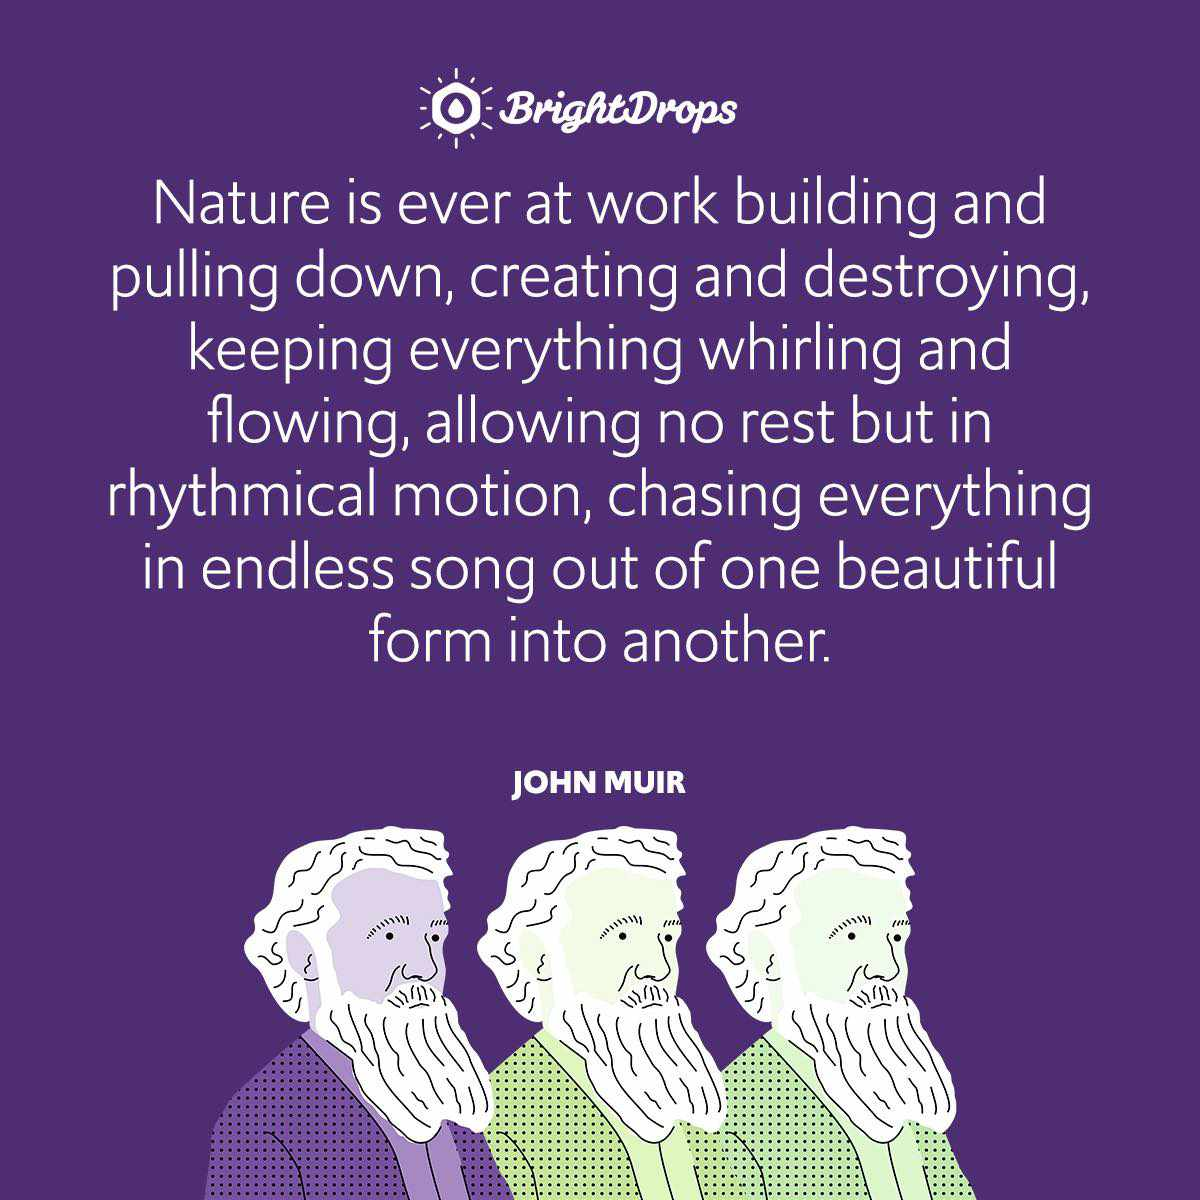 Nature is ever at work building and pulling down, creating and destroying, keeping everything whirling and flowing, allowing no rest but in rhythmical motion, chasing everything in endless song out of one beautiful form into another.